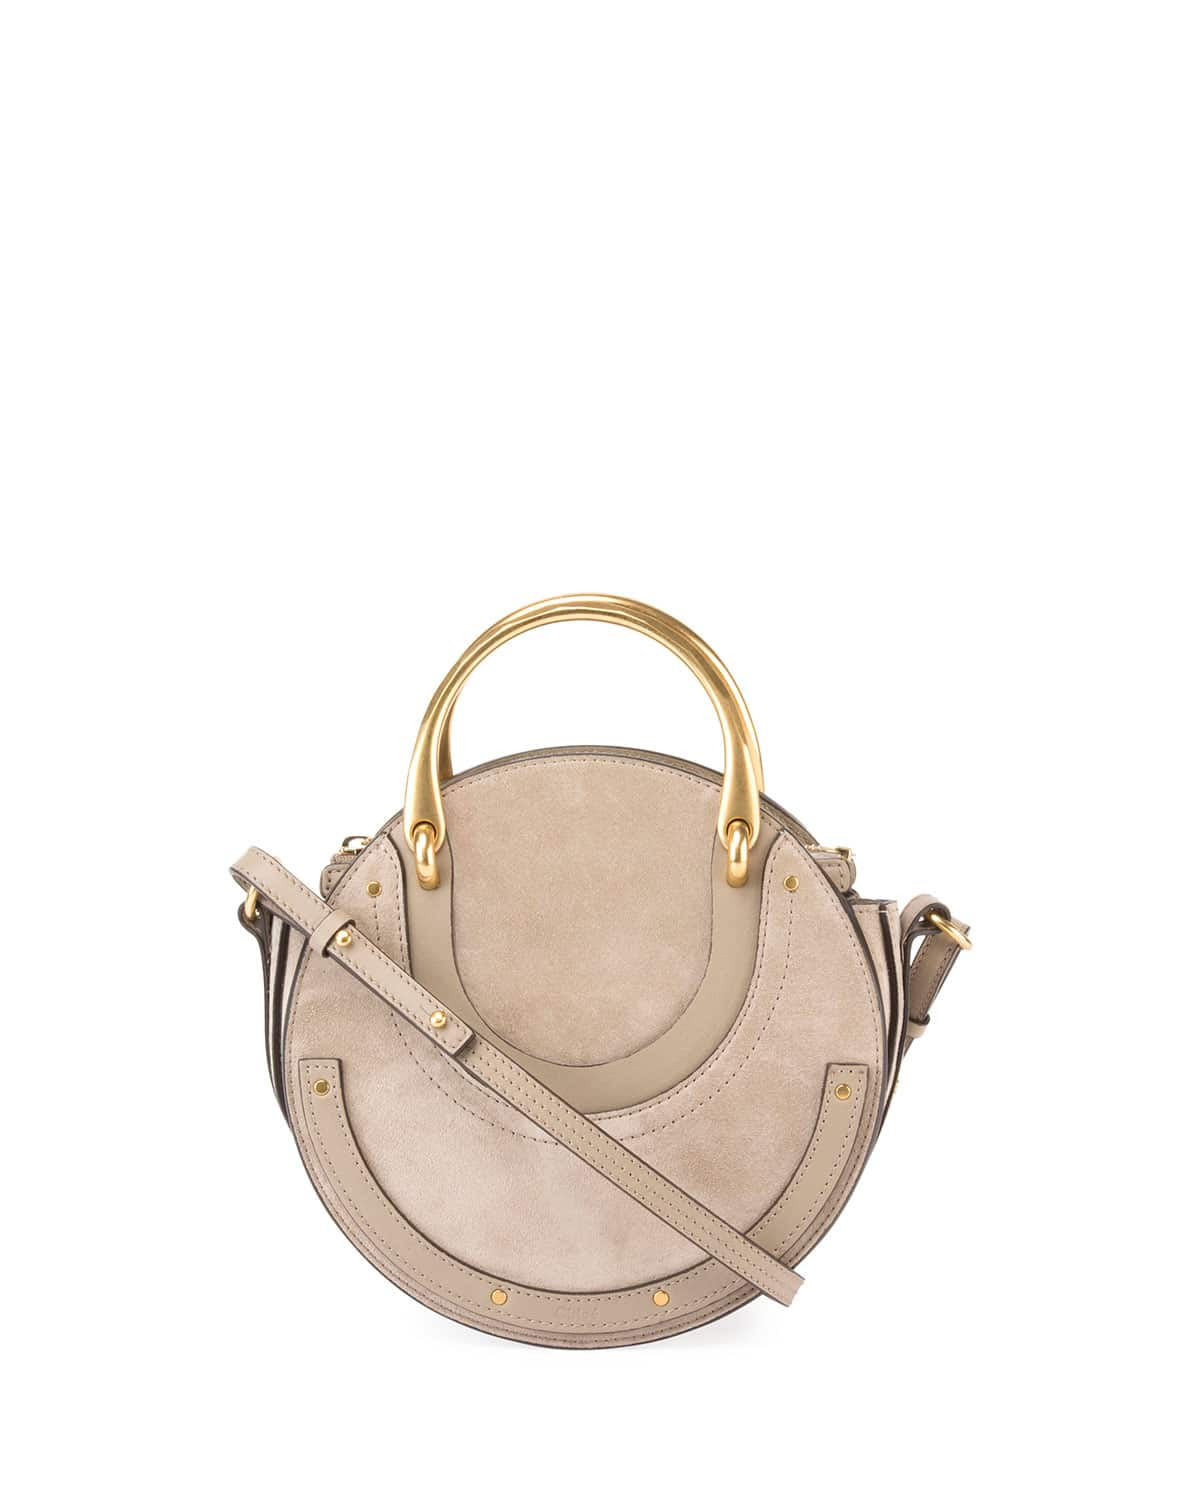 Chloe Fall Winter 2017 Bag Collection Featuring The Pixie